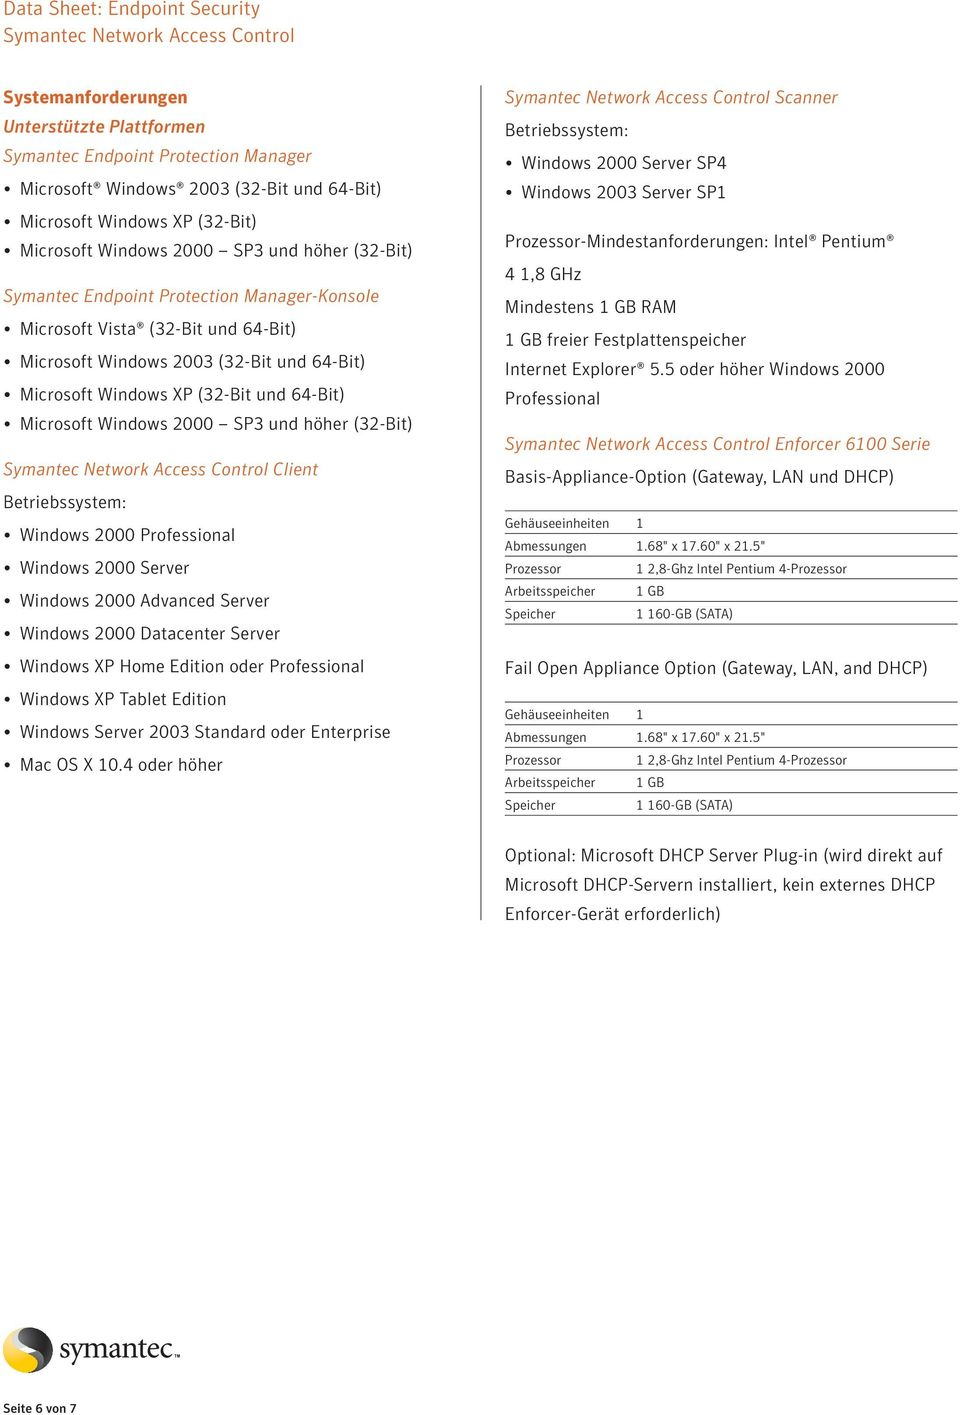 Microsoft Windows 2000 SP3 und höher (32-Bit) Client Betriebssystem: Windows 2000 Professional Windows 2000 Server Windows 2000 Advanced Server Windows 2000 Datacenter Server Windows P Home Edition